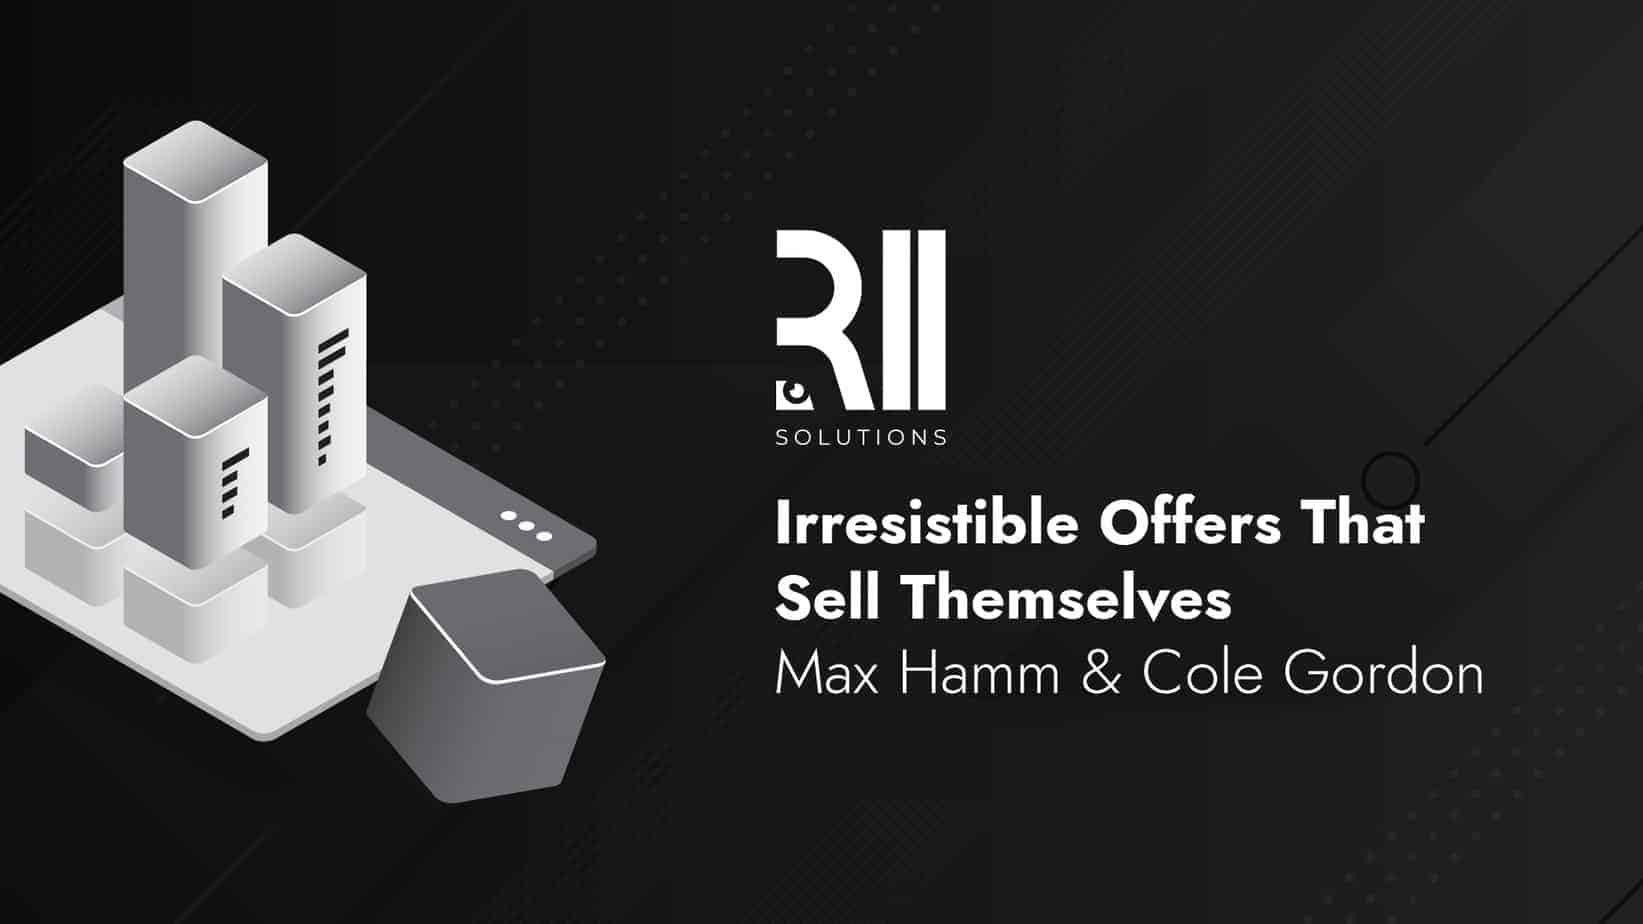 Irresistible Offers That Sell Themselves – Max Hamm & Cole Gordon